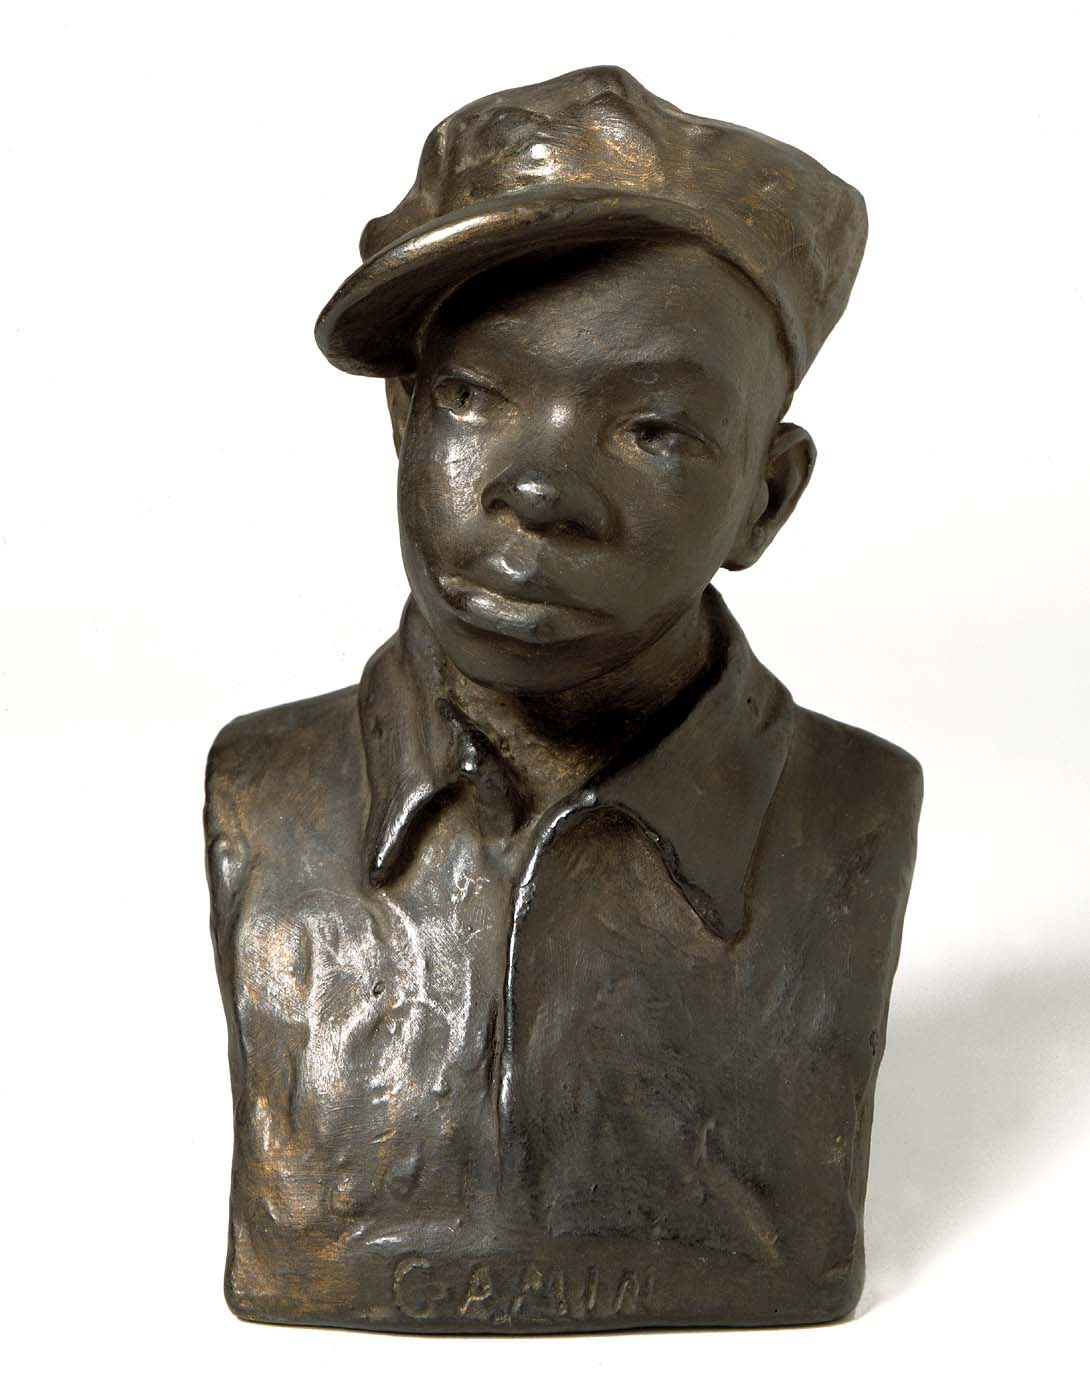 augusta savage research In 1945, augusta savage, a sculptor and a key figure in the harlem renaissance, traded the hustle of harlem for a secluded house, 100 miles north, tucked at the end of a dirt drive in.